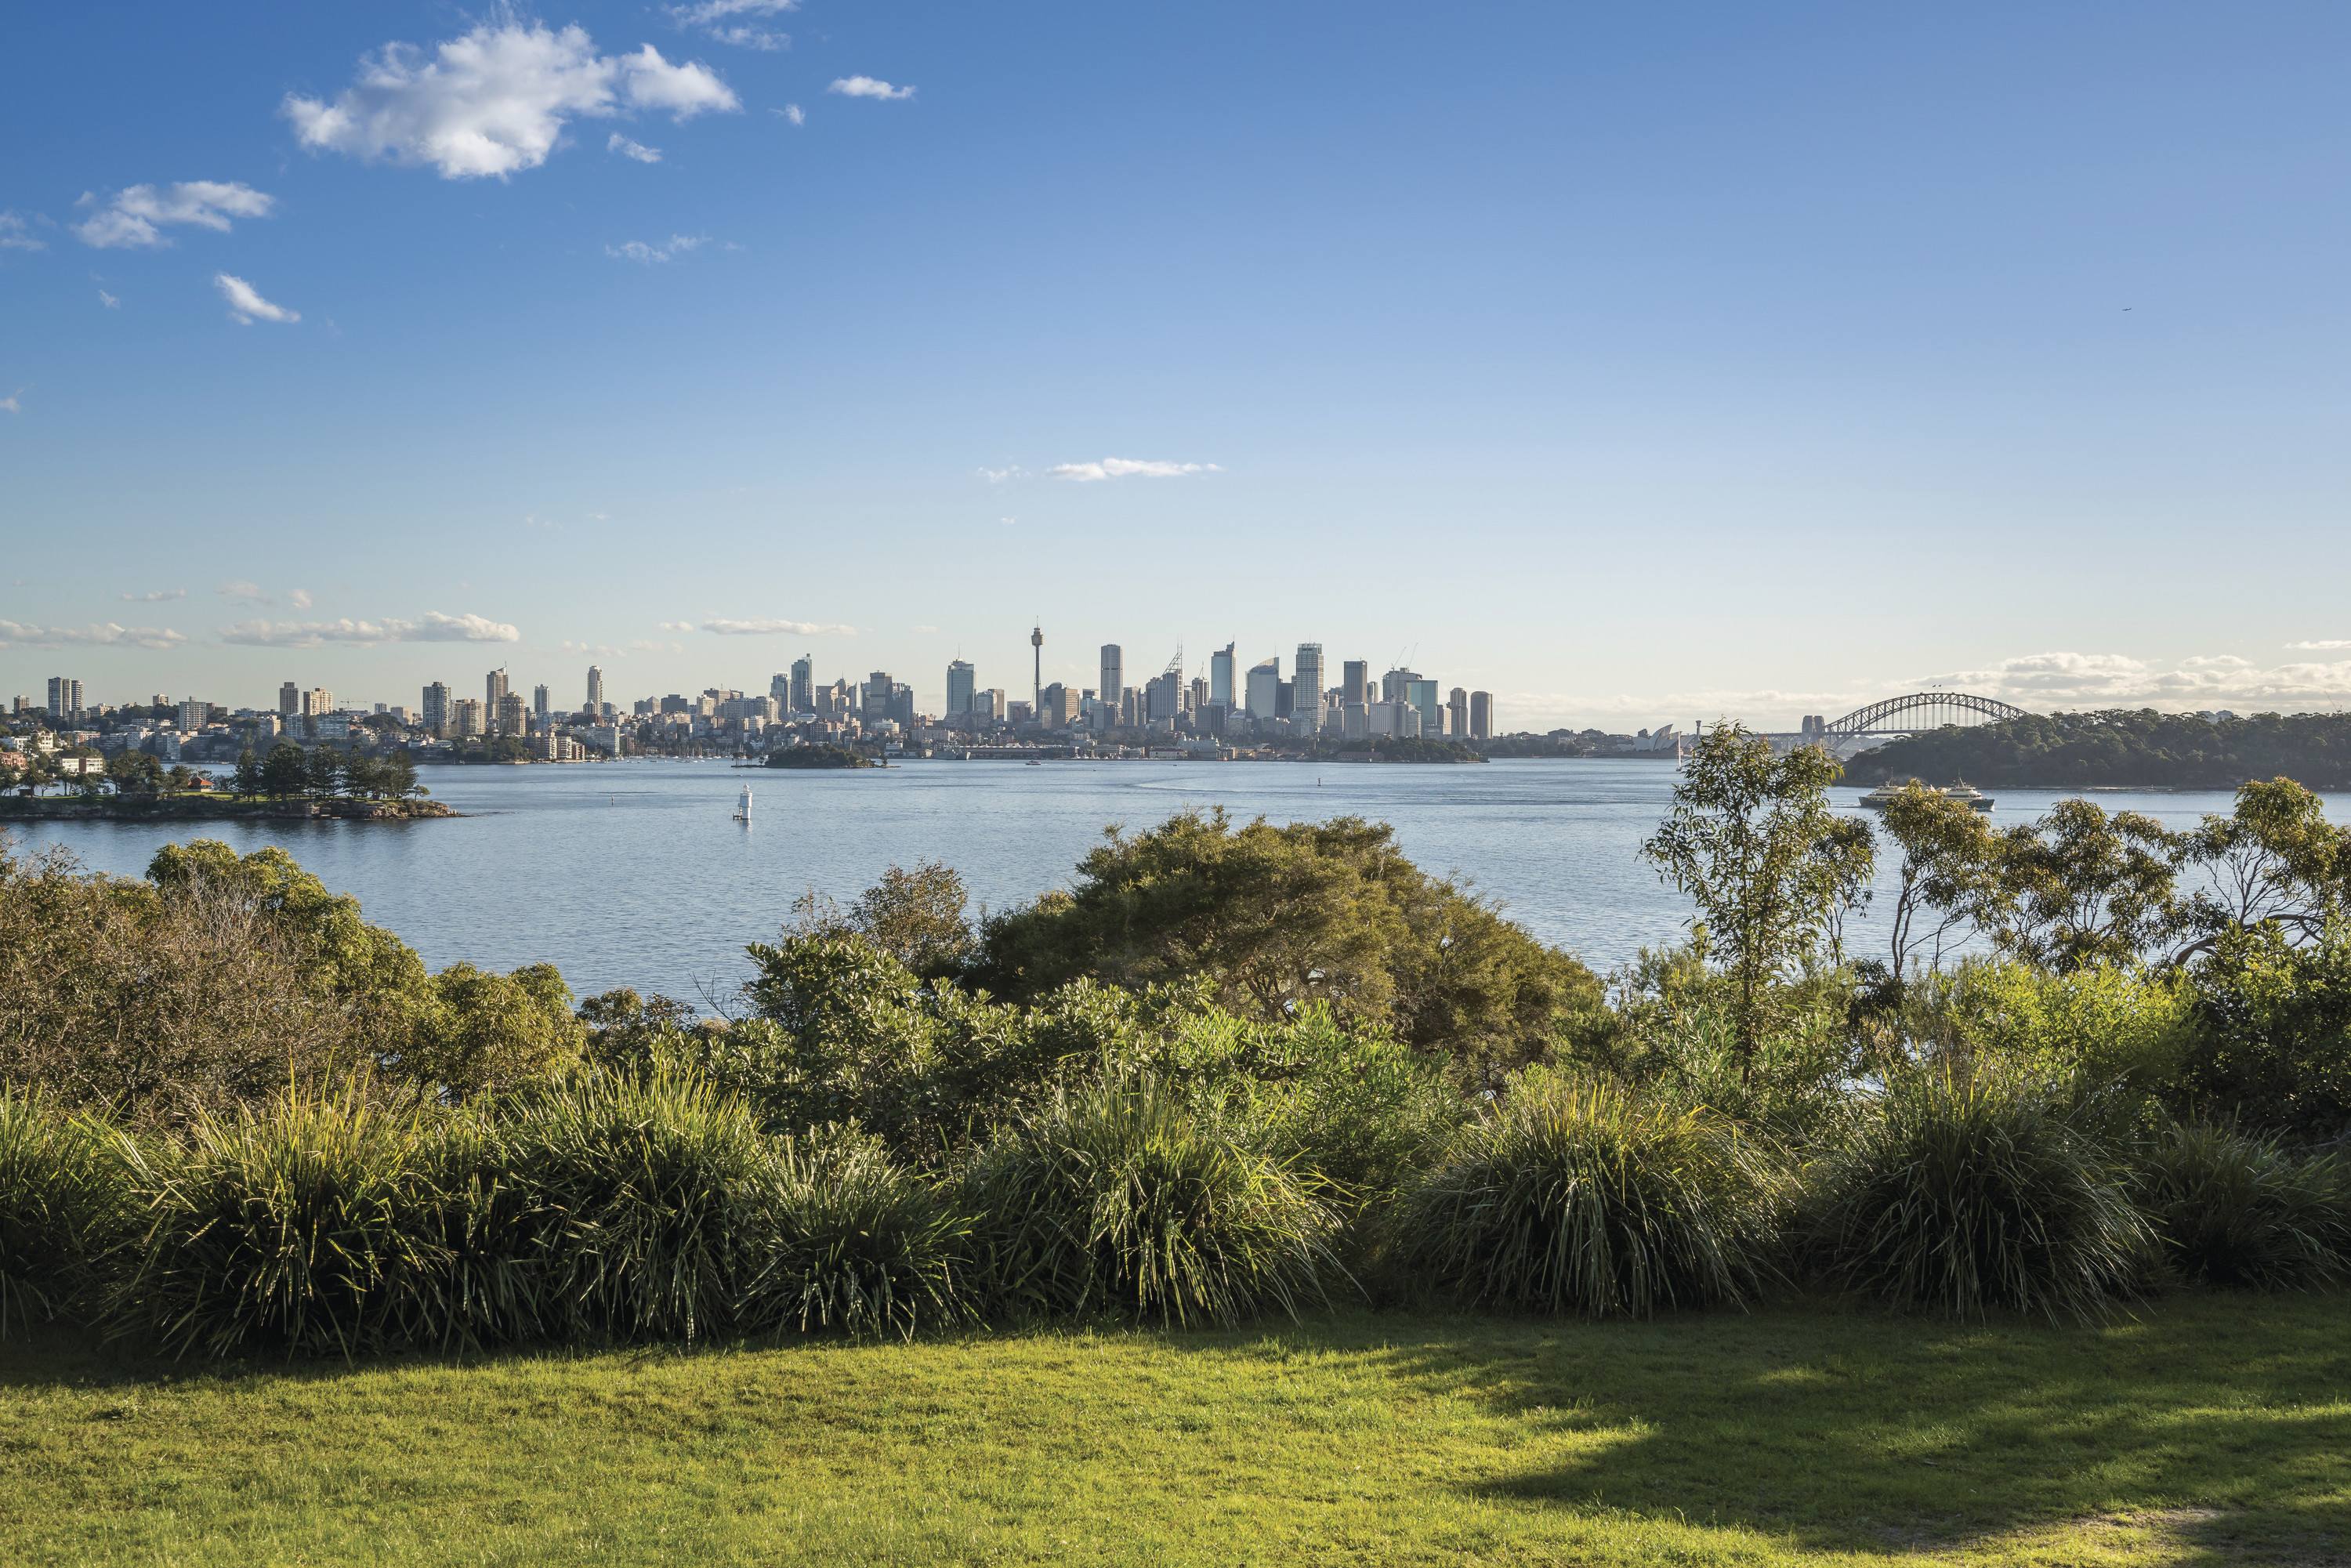 Steele Point Clearing at Neilson Park in Vaucluse at Sydney Harbour National Park. The views extend back to the Sydney city.